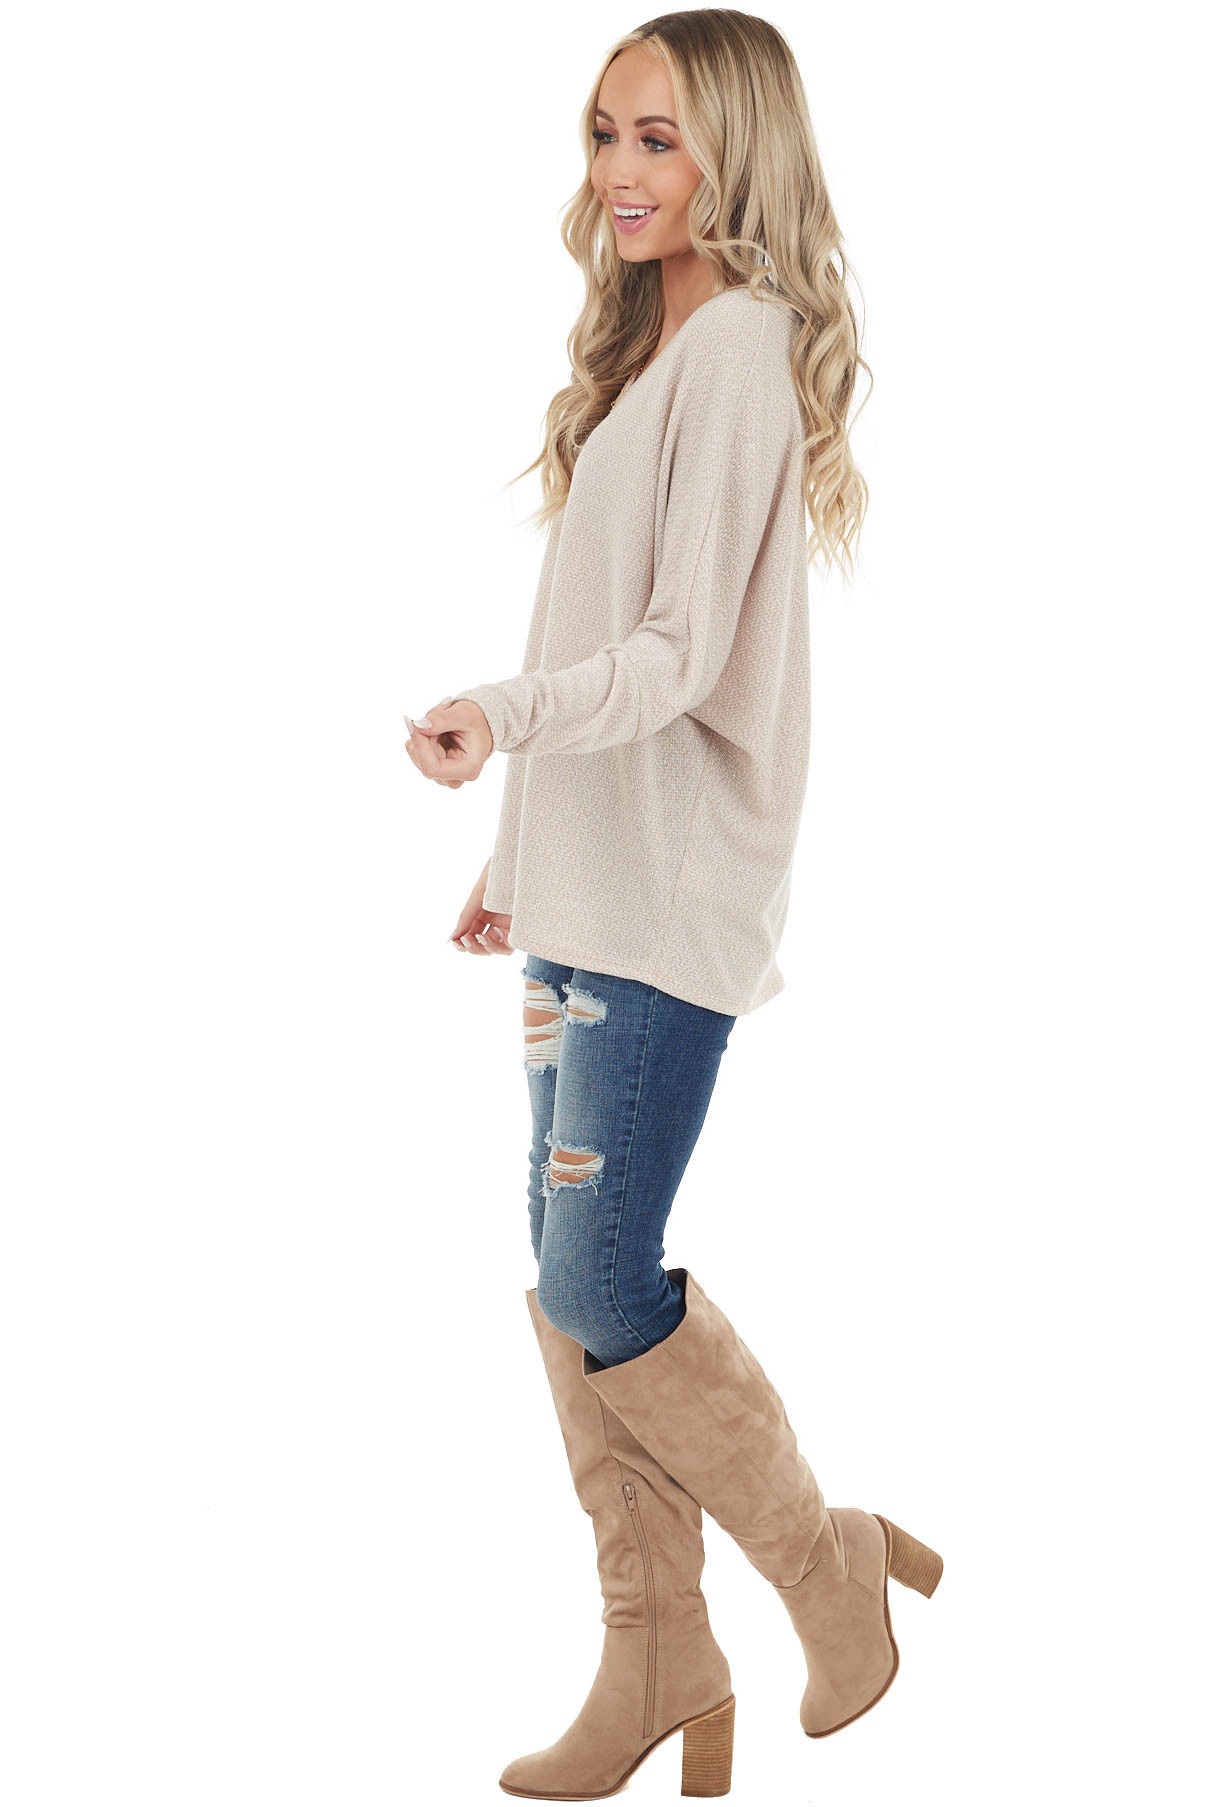 Heathered Oatmeal V Neck Knit Top with Long Dolman Sleeves